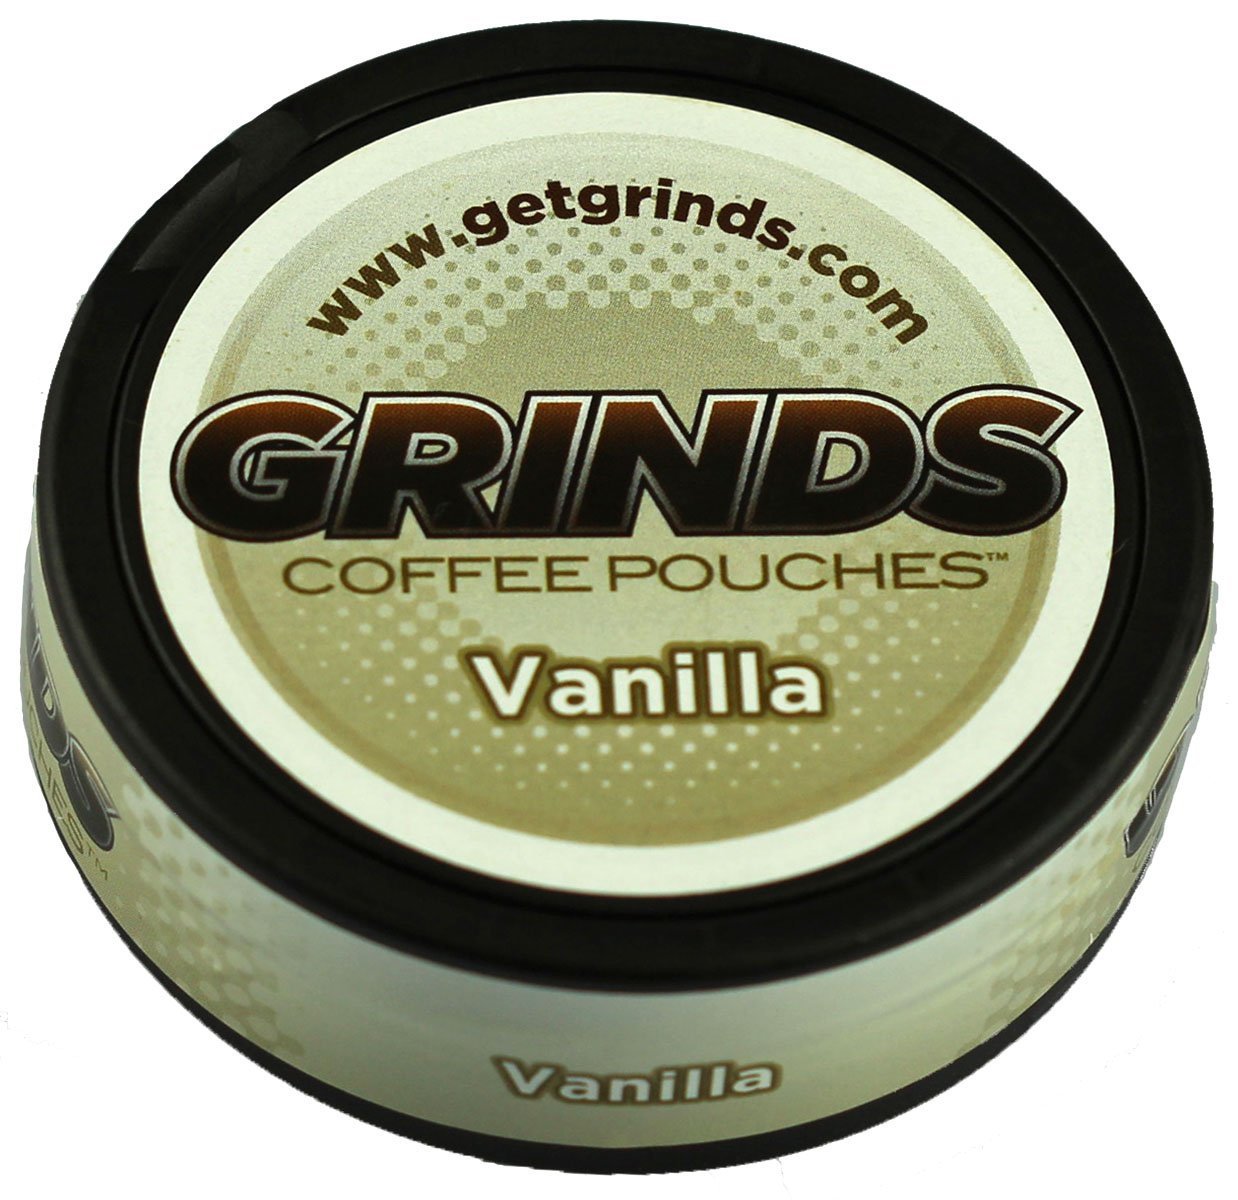 Vanilla Grinds Coffee Pouches